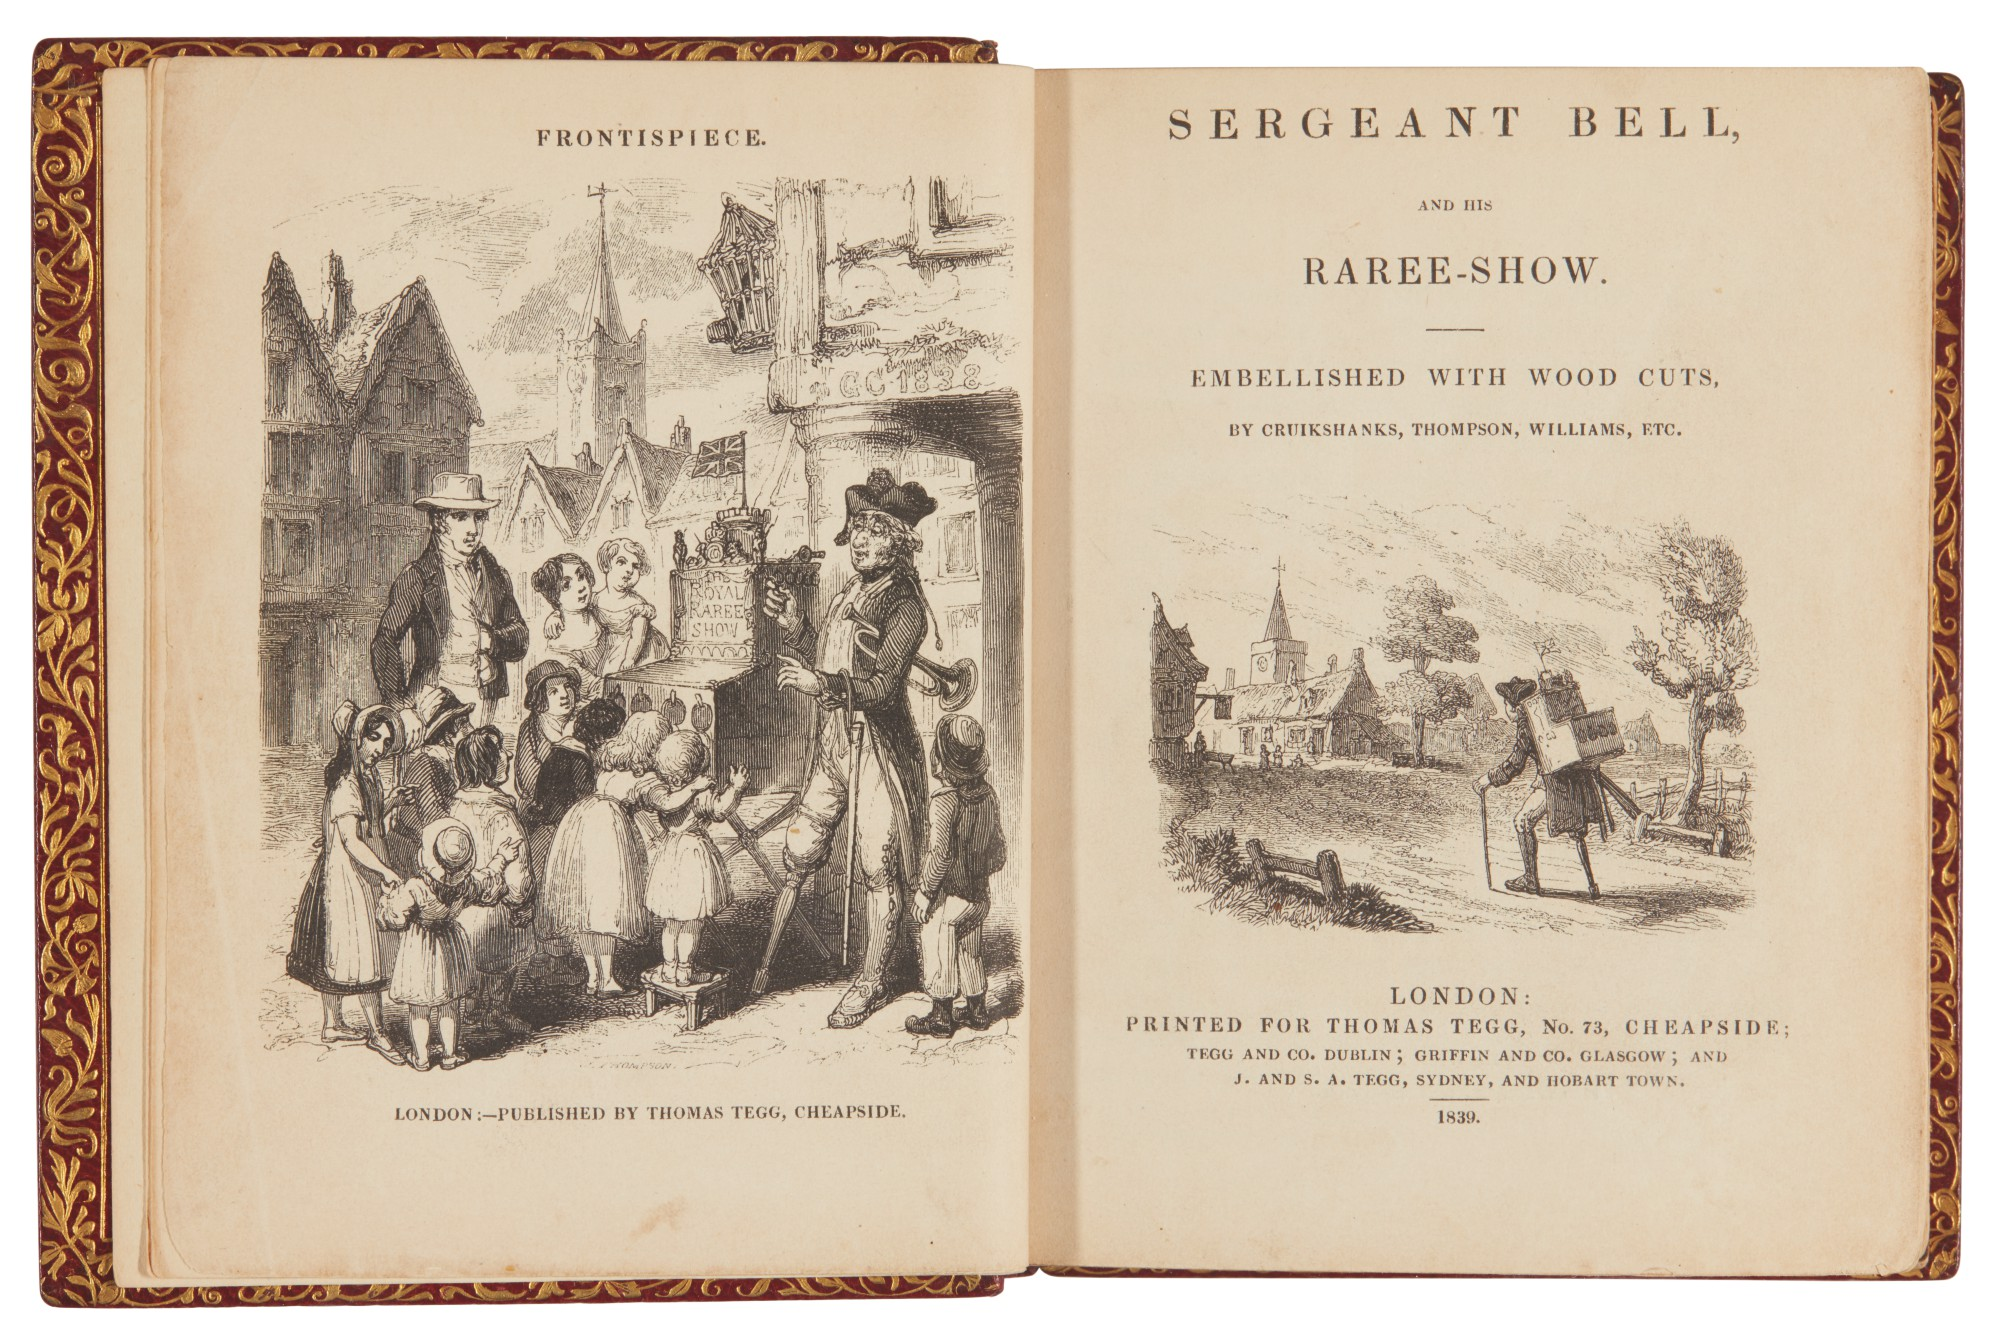 [Mogridge]--[Dickens], Sergeant Bell, and his Raree-Show, 1839, first edition